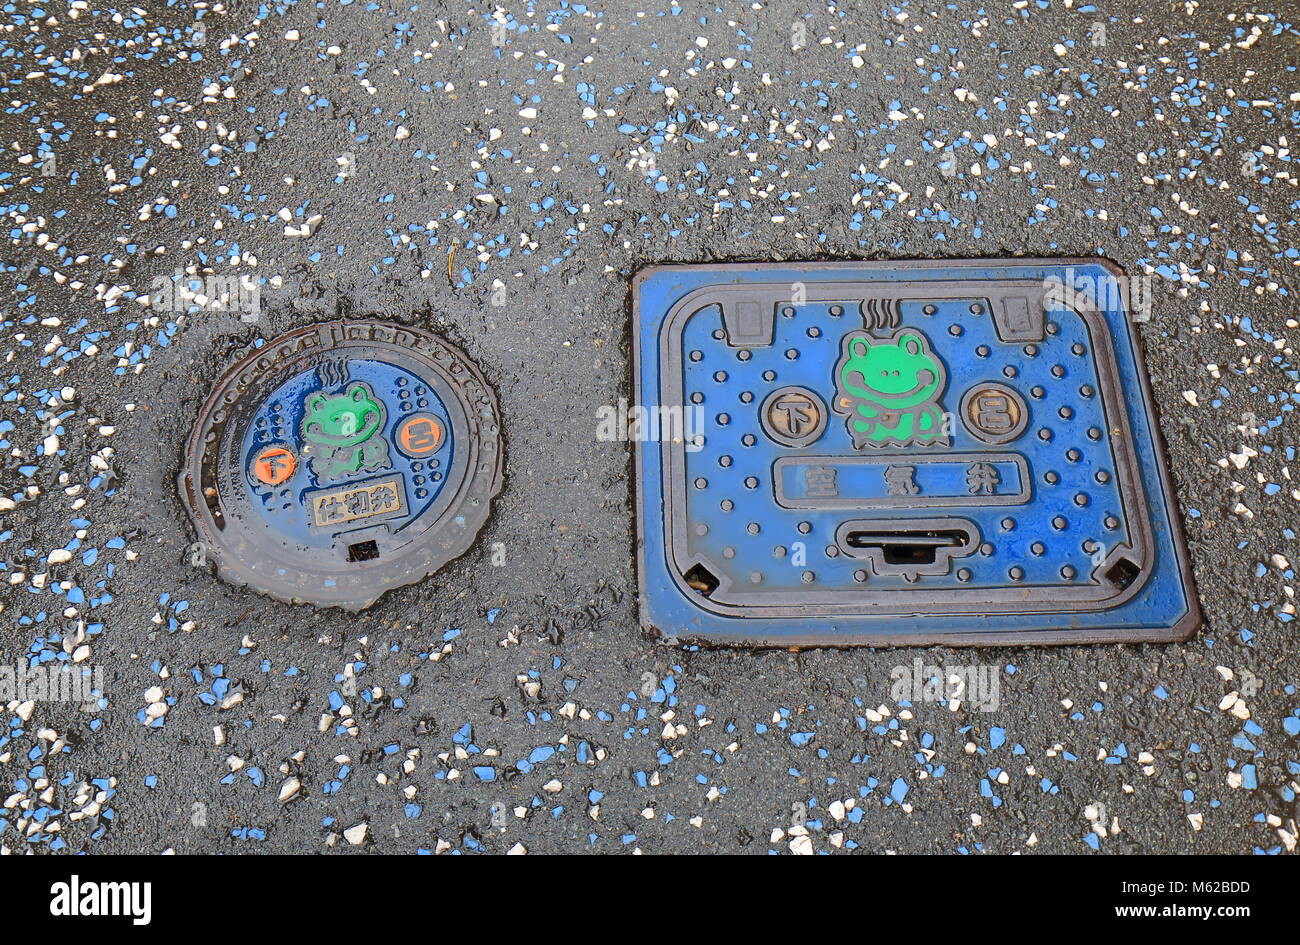 Cute design utility hole cover in Gero city Japan - Stock Image